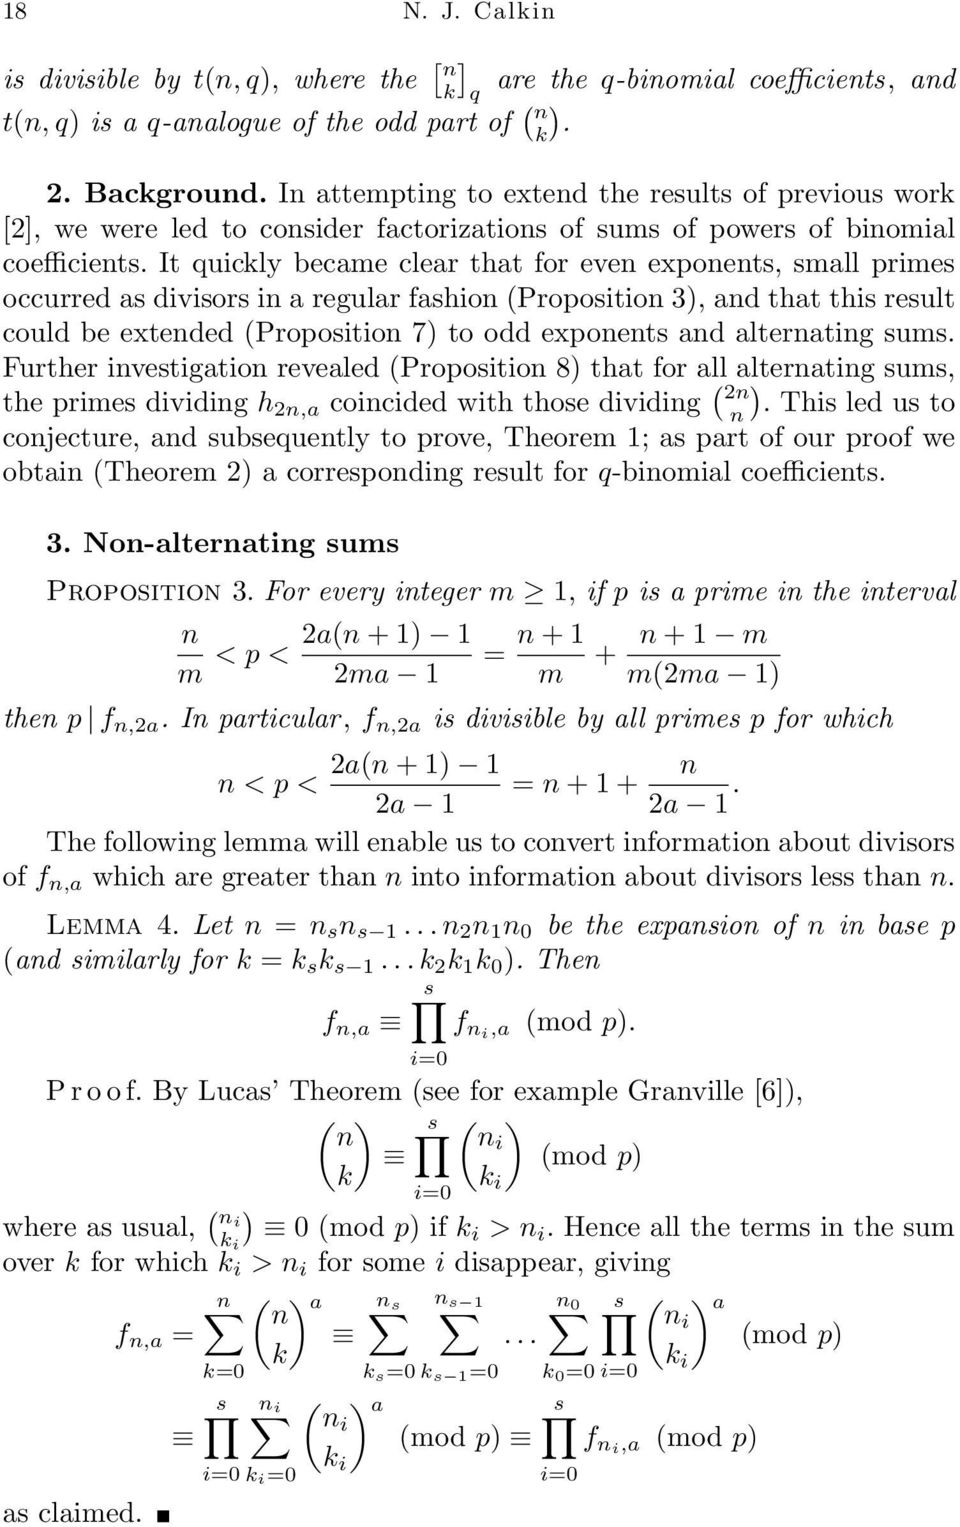 It uicly became clear that for eve expoets, small primes occurred as divisors i a regular fashio (Propositio 3), ad that this result could be exteded (Propositio 7) to odd expoets ad alteratig sums.